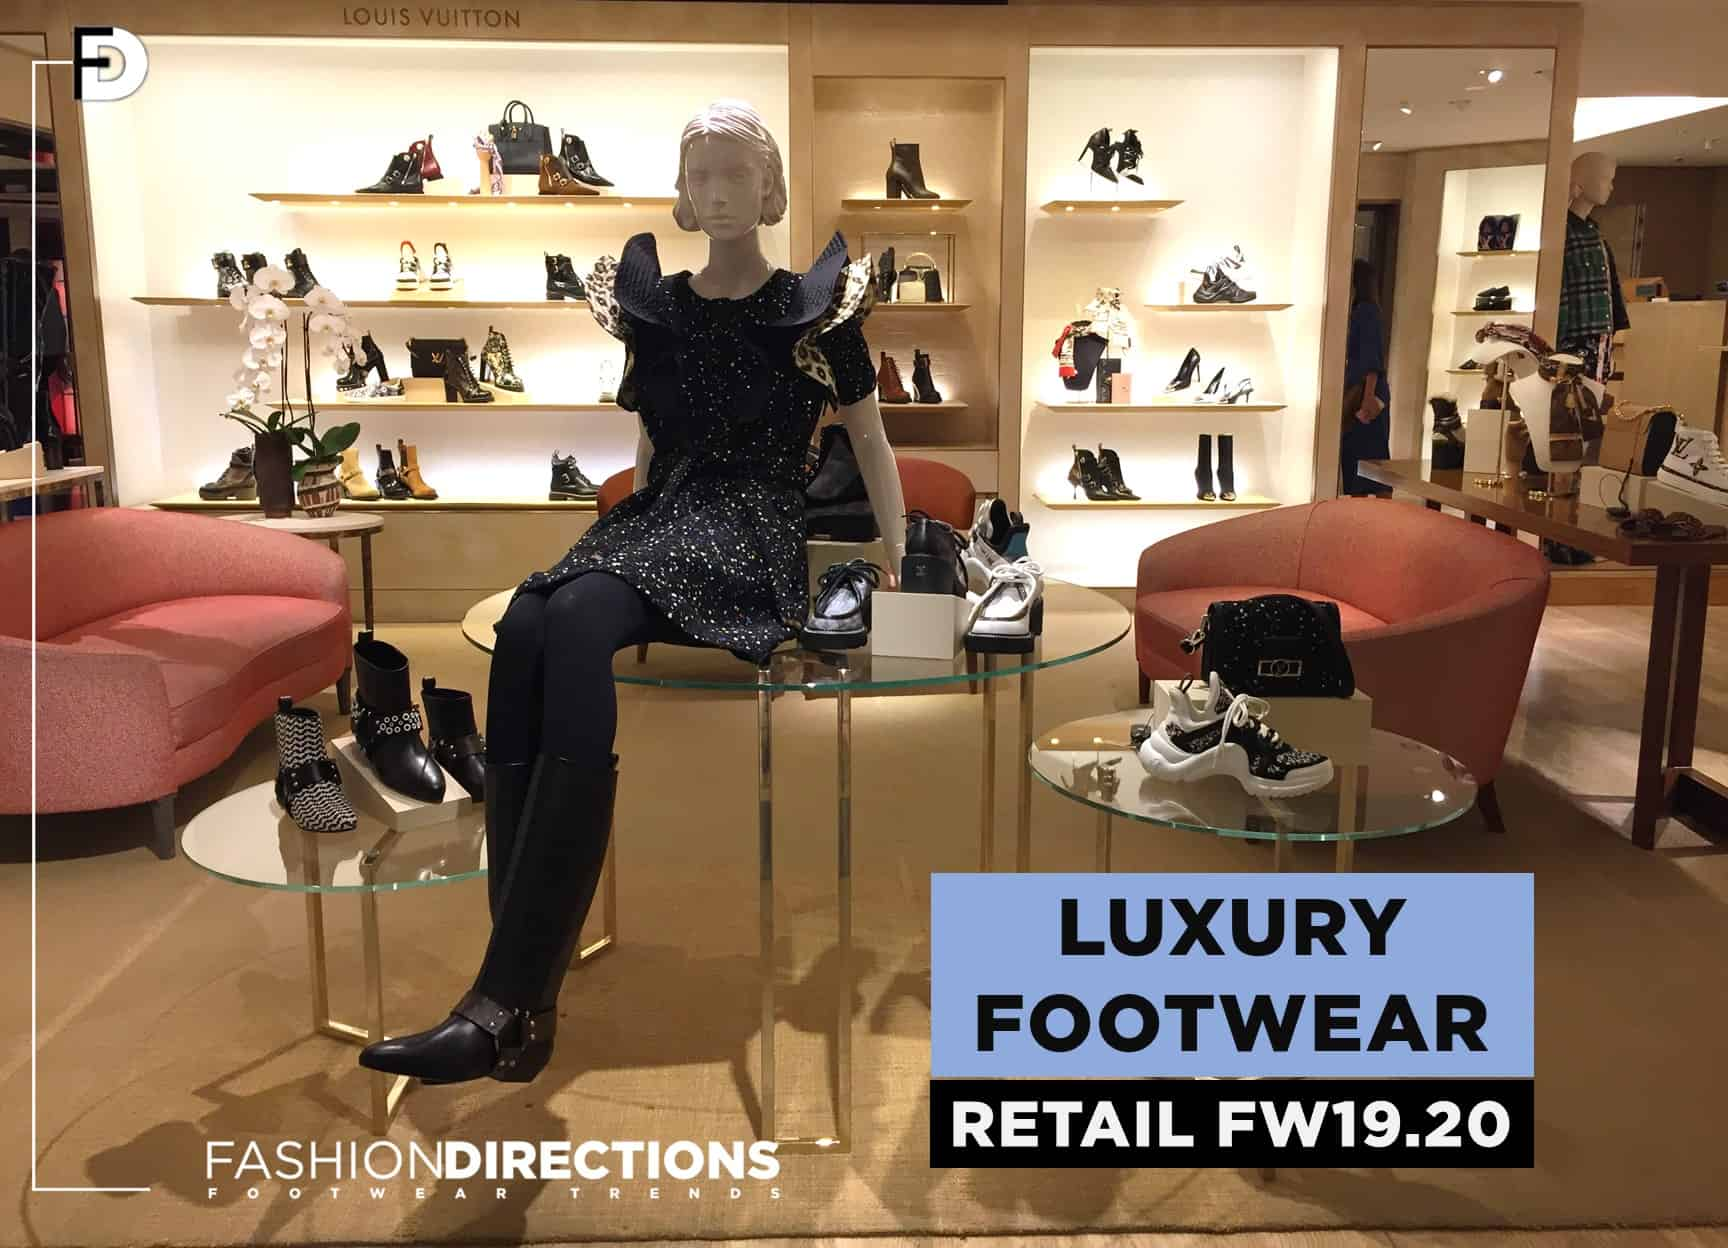 Retail Luxury footwear trends Fw19.20